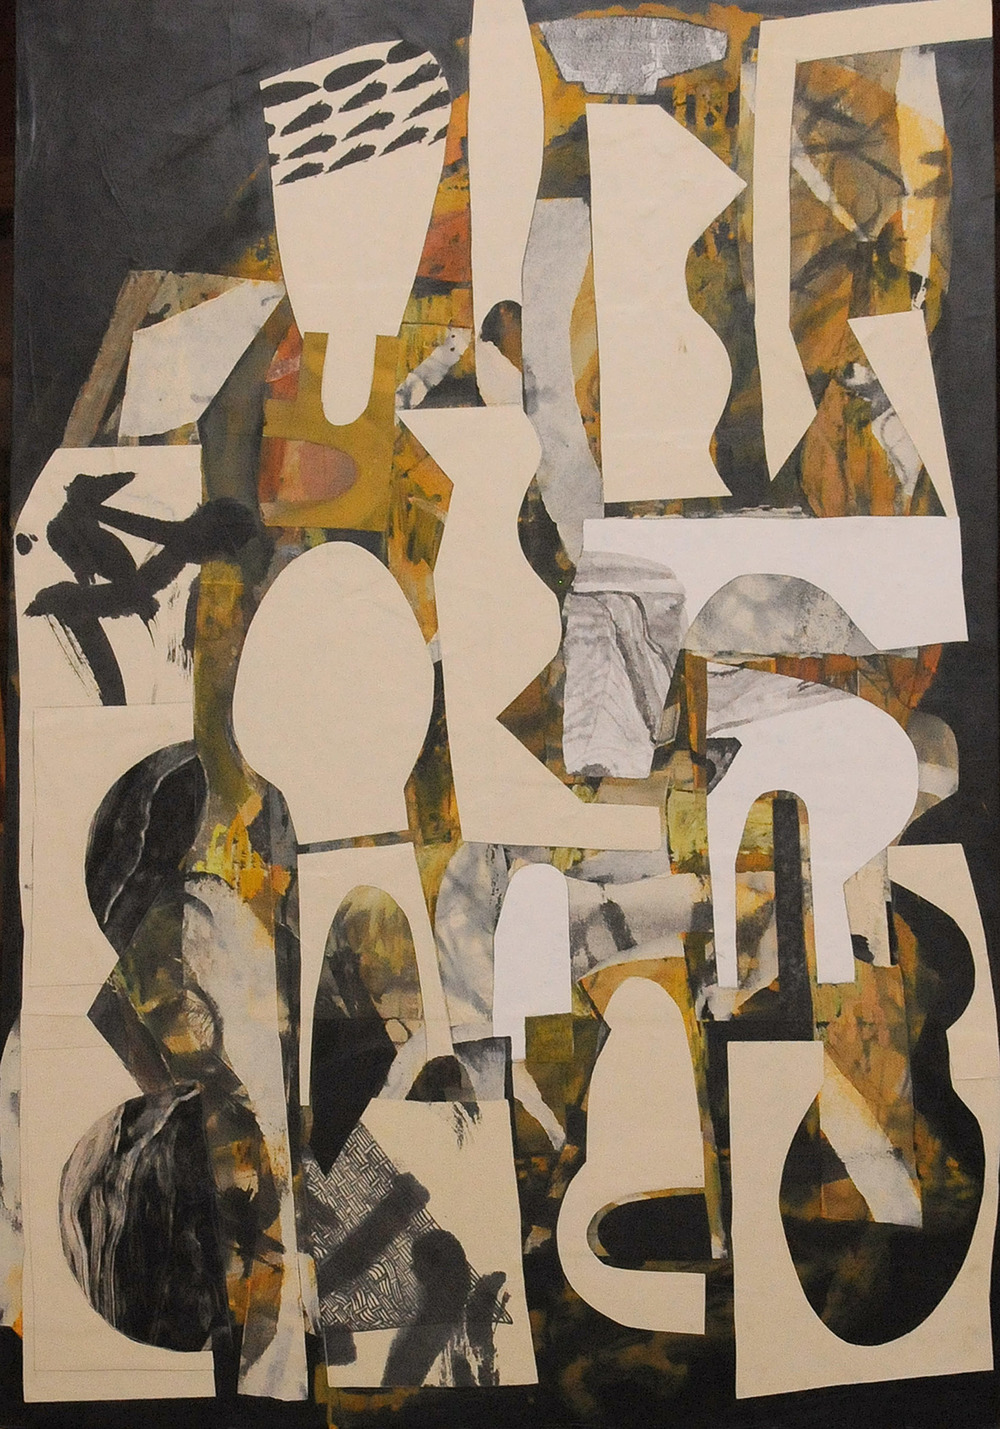 "9 5 2011 38"" x 26"" x 2"" Mixed media collage on birch panel  2011"